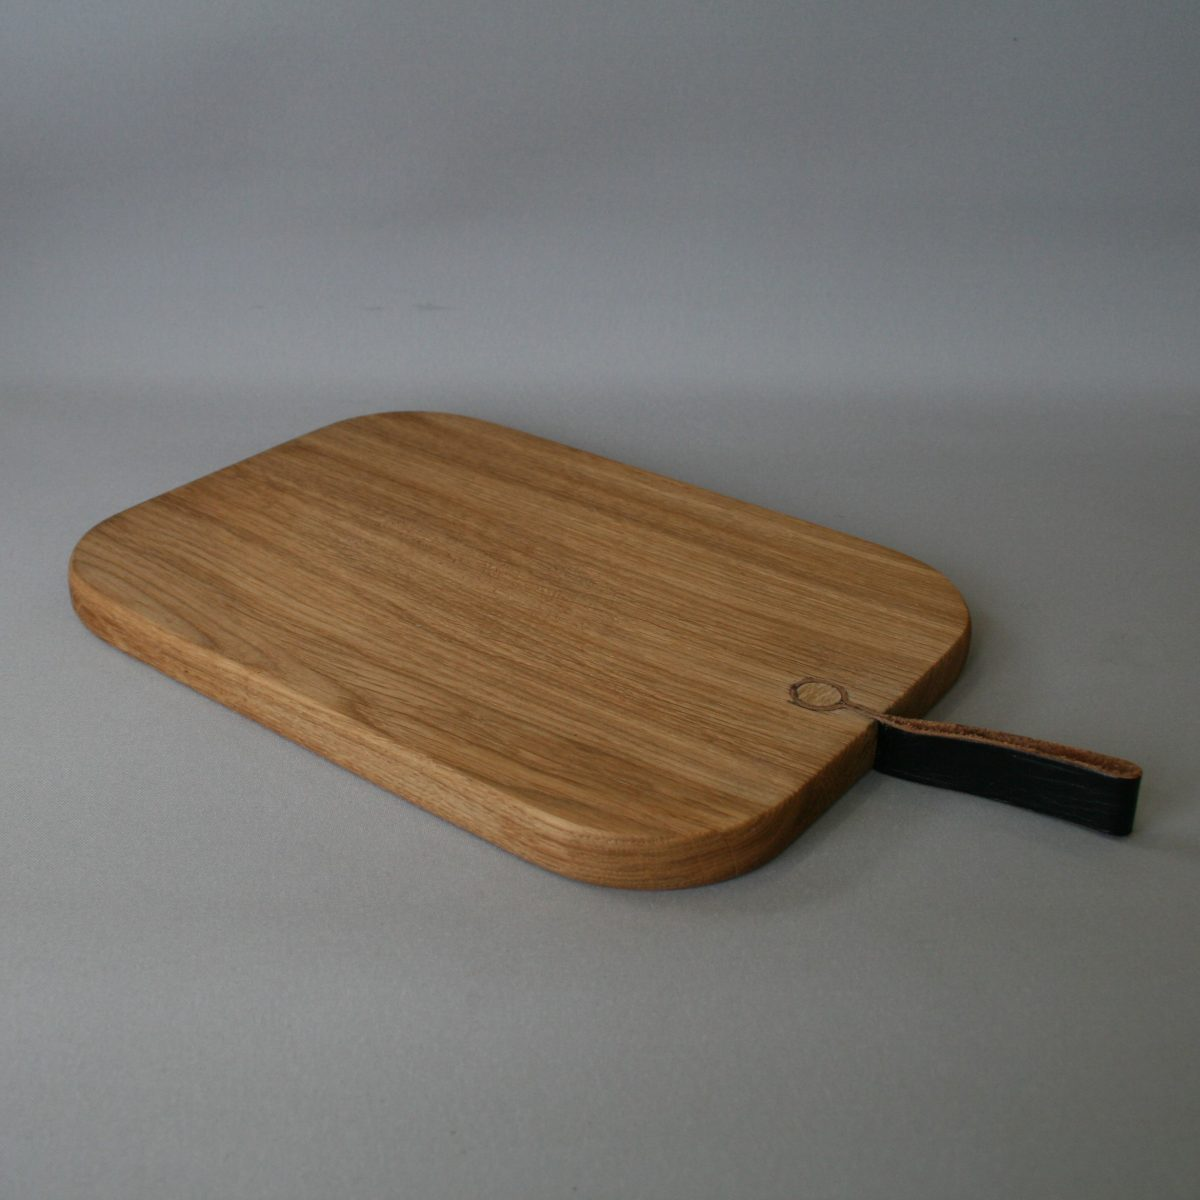 solid English oak handmade rectangular cheese board/williamsantiques